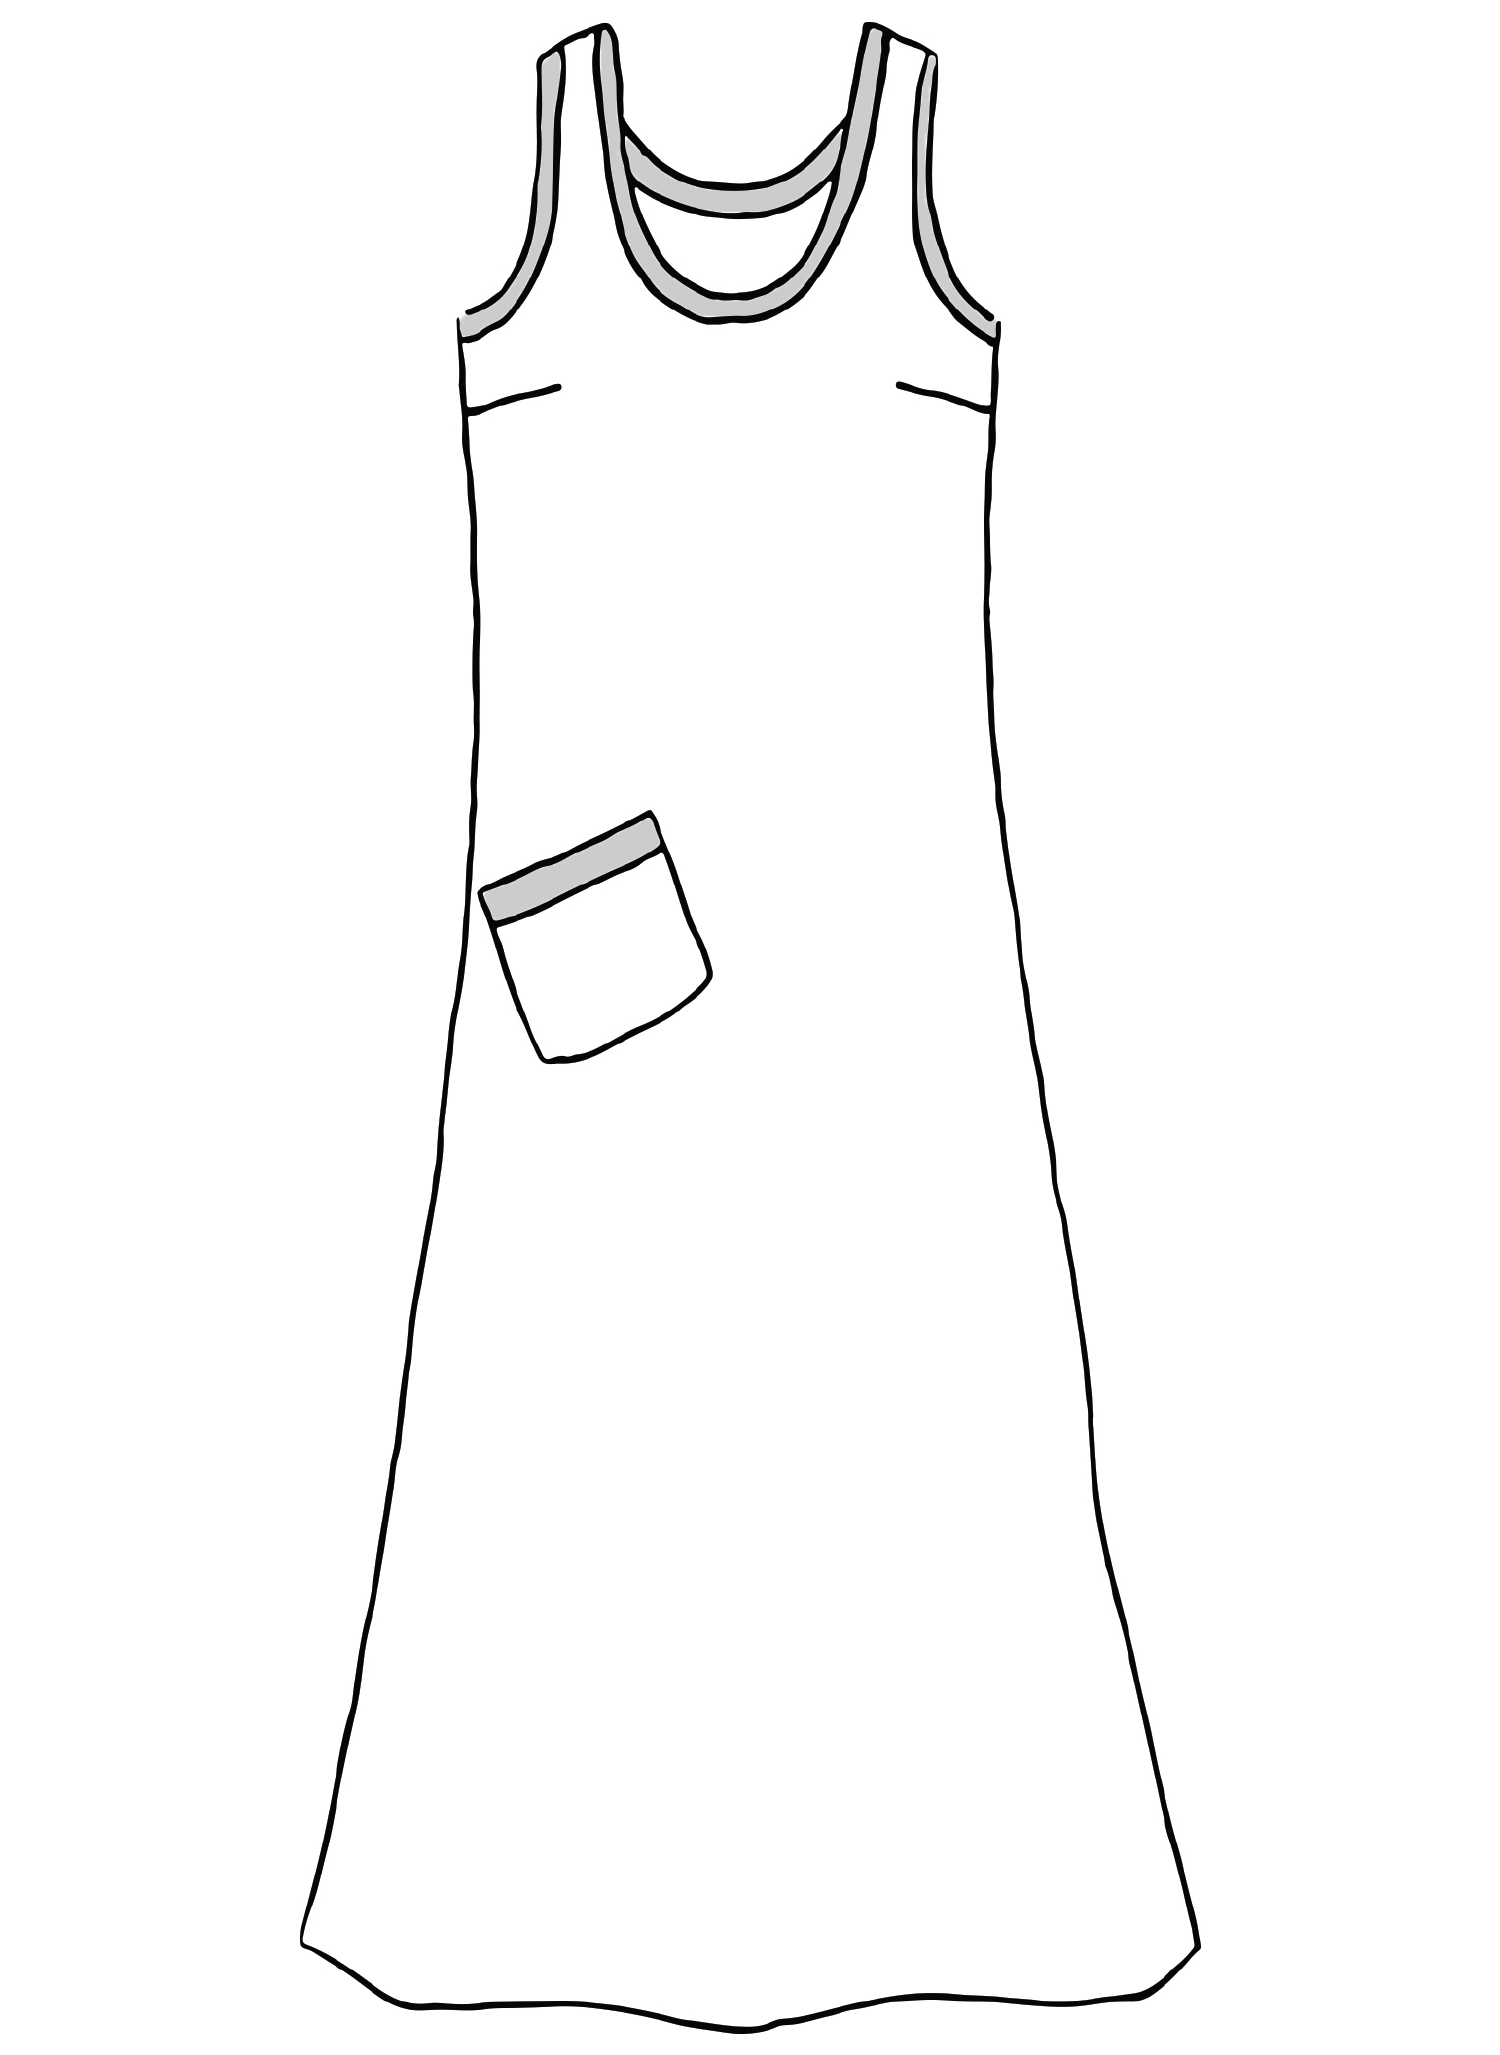 Serene Dress sketch image